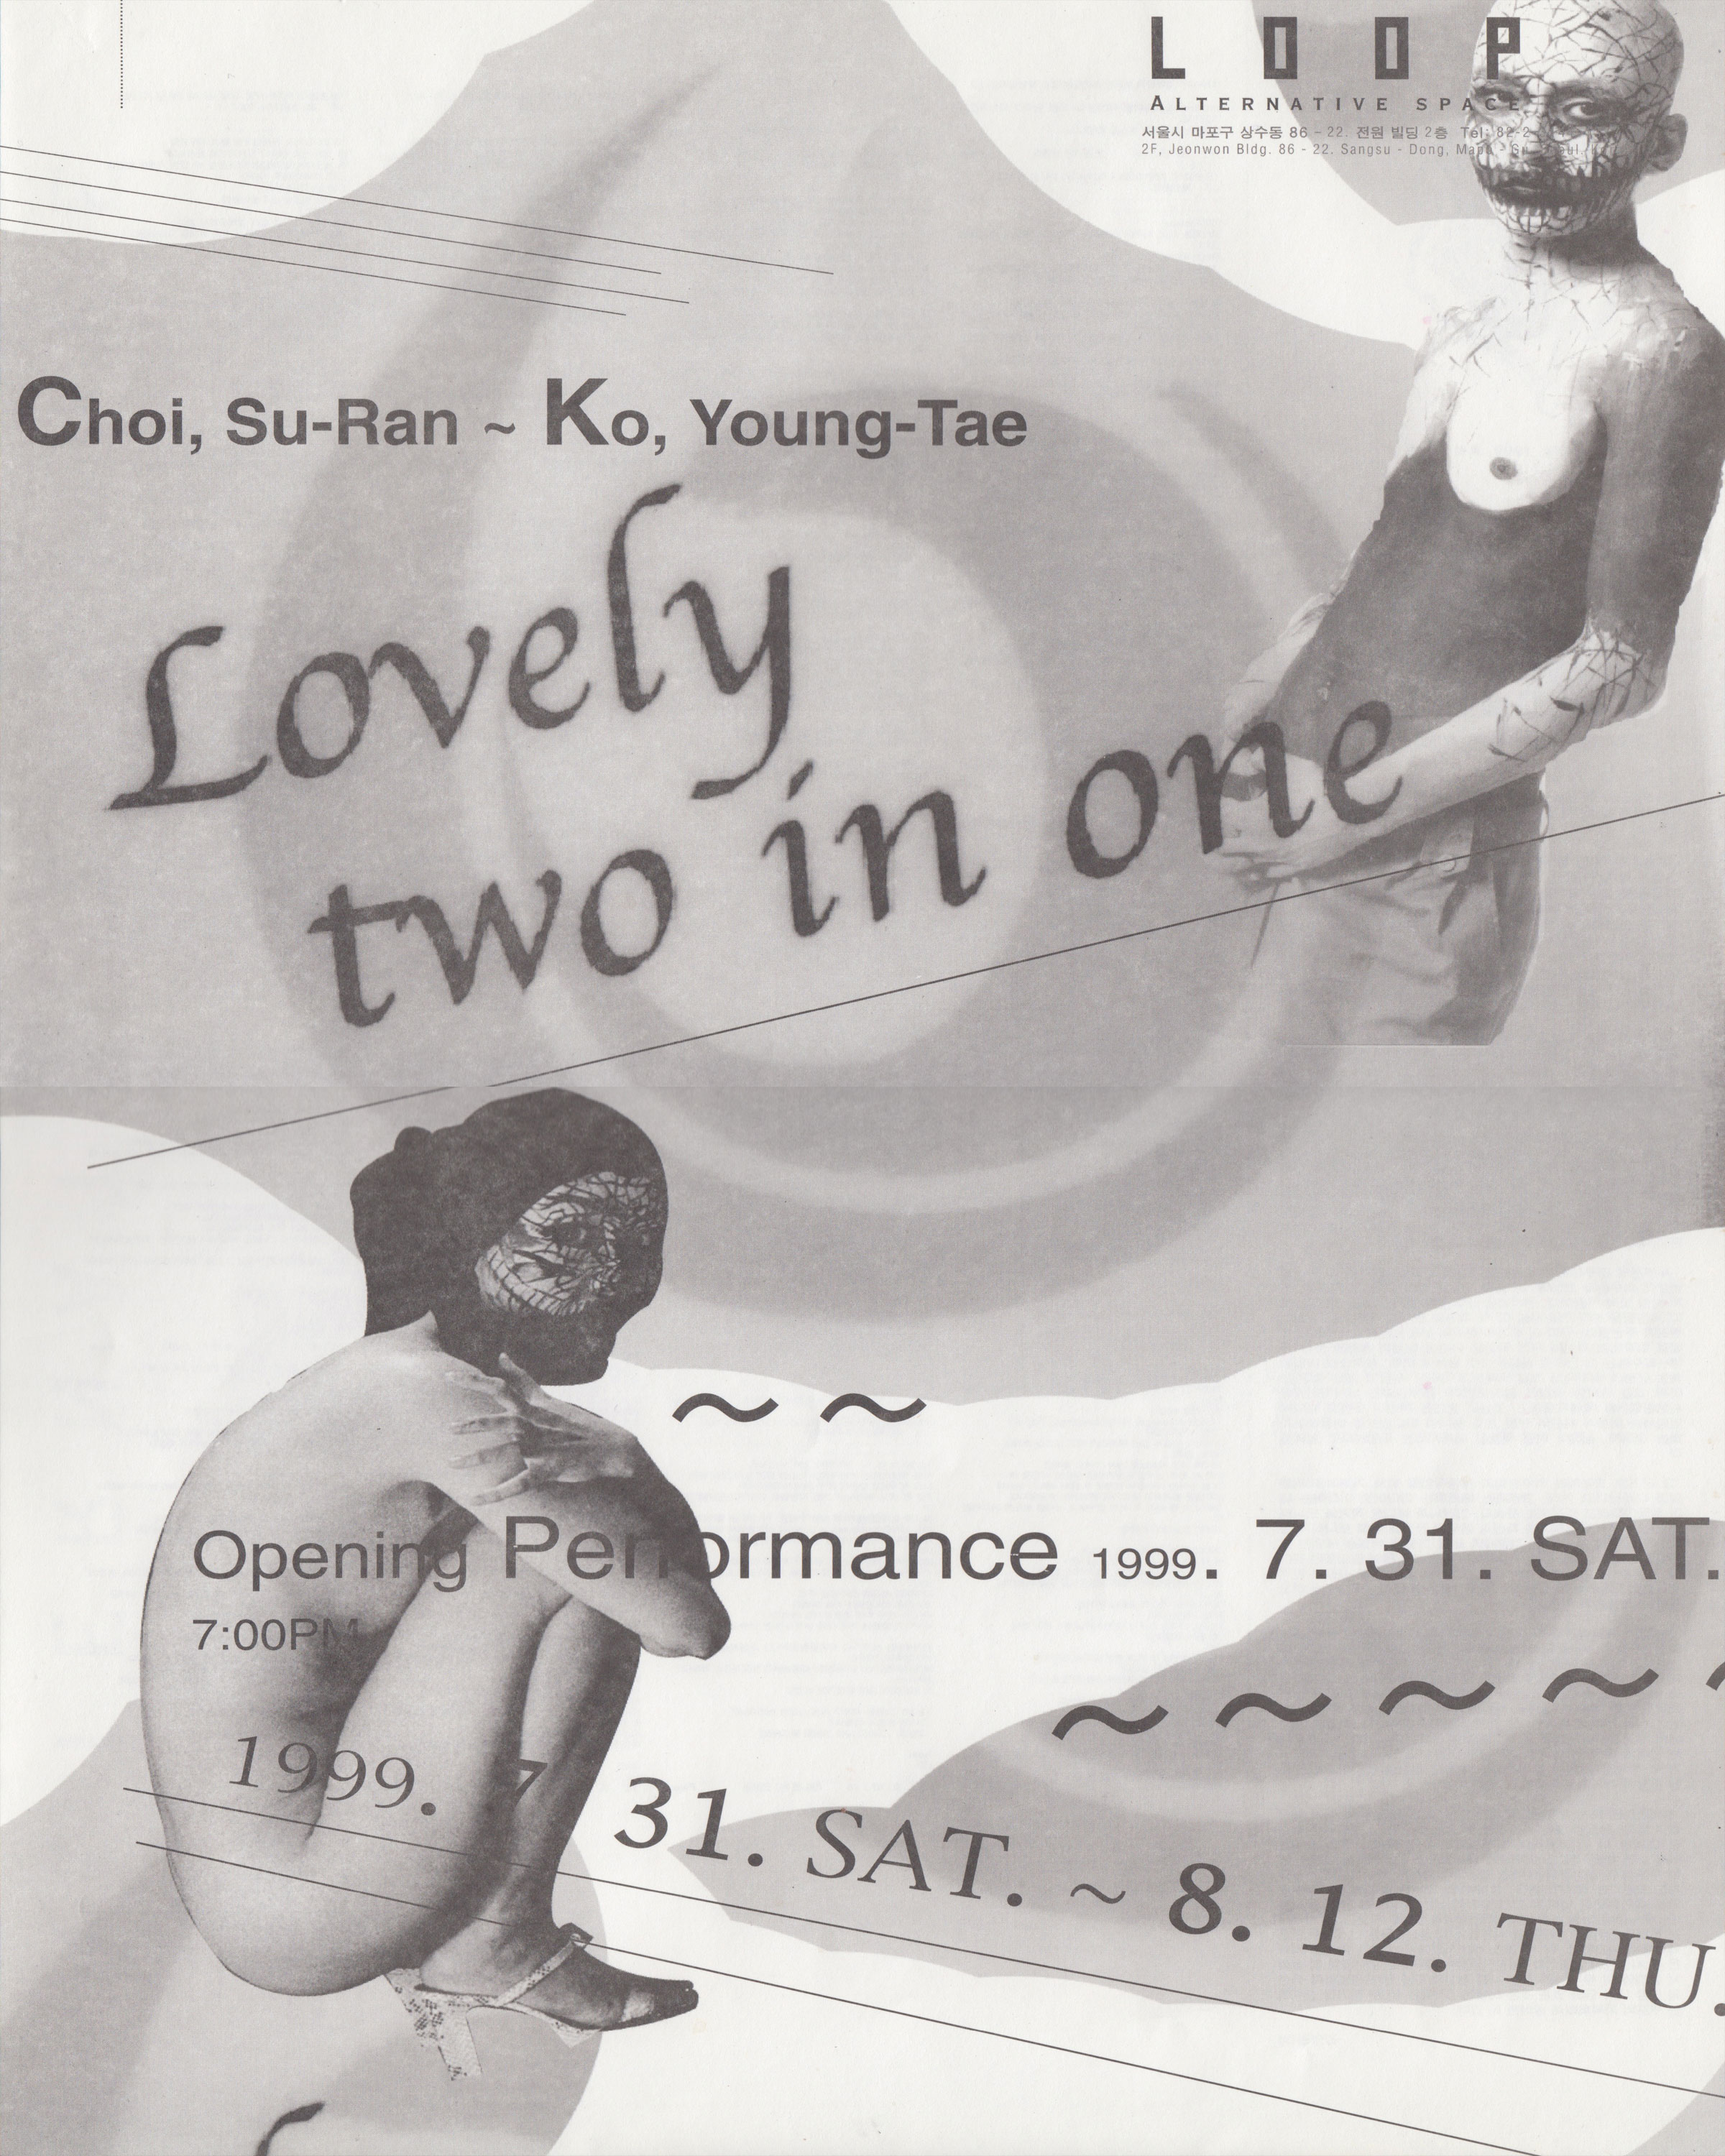 Lovely Two in One: Suran Choi, Young Tae Ko